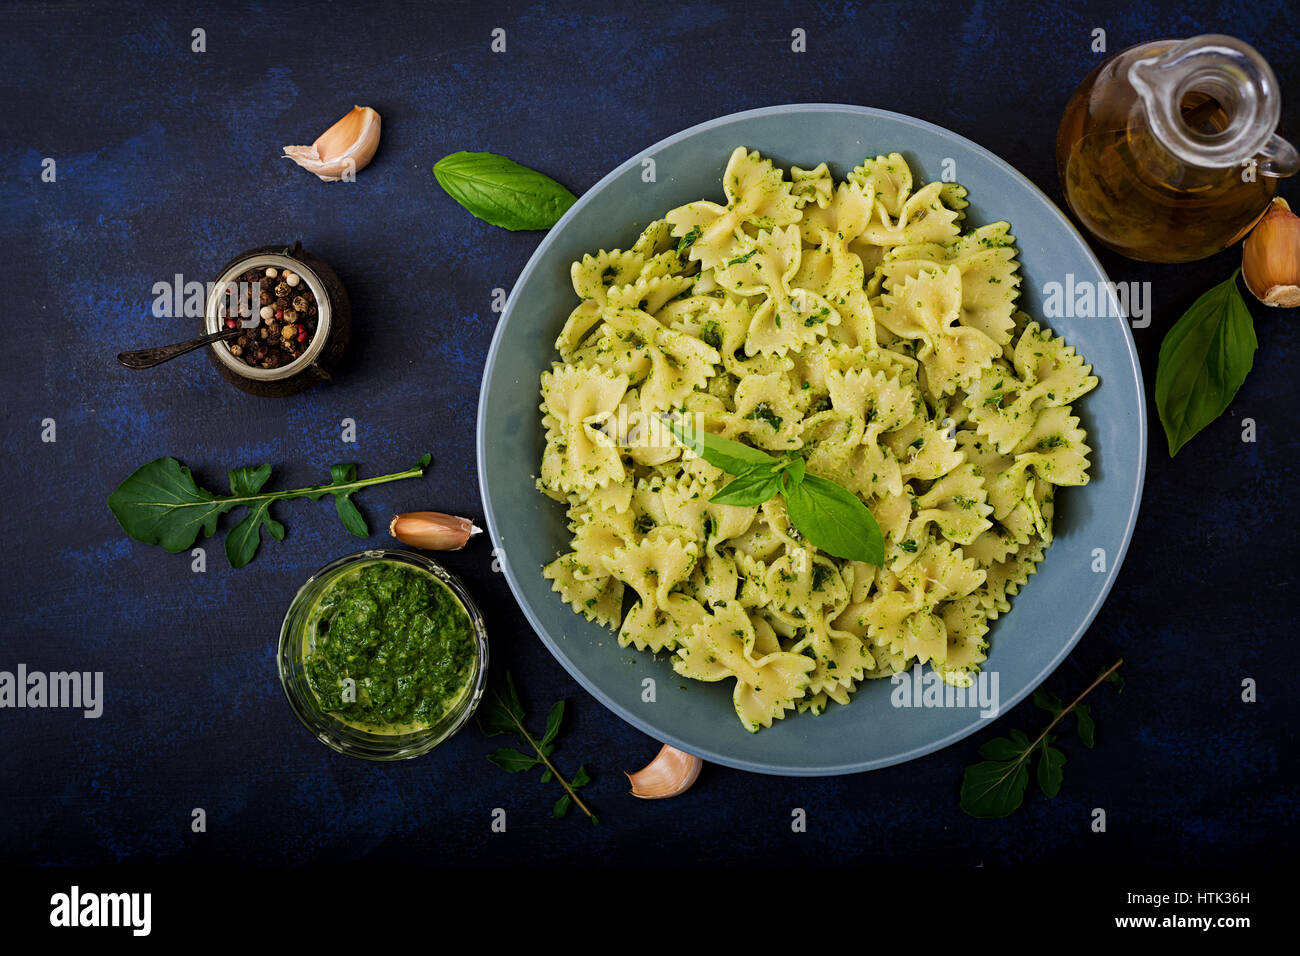 Vegan  Farfalle pasta in a basil-spinach sauce with garlic. Flat lay. Top view - Stock Image